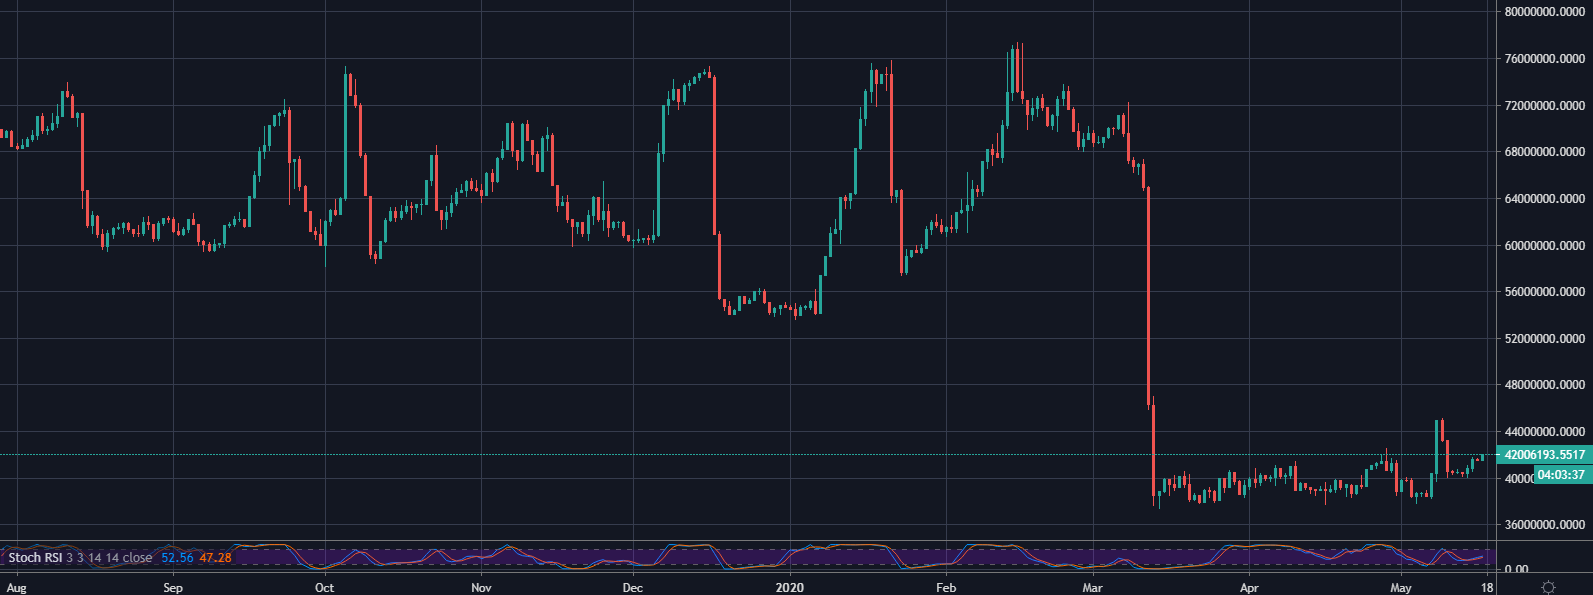 Bitfinex XRP/USD Longs 1D August 2019 - May 2020: TradingView